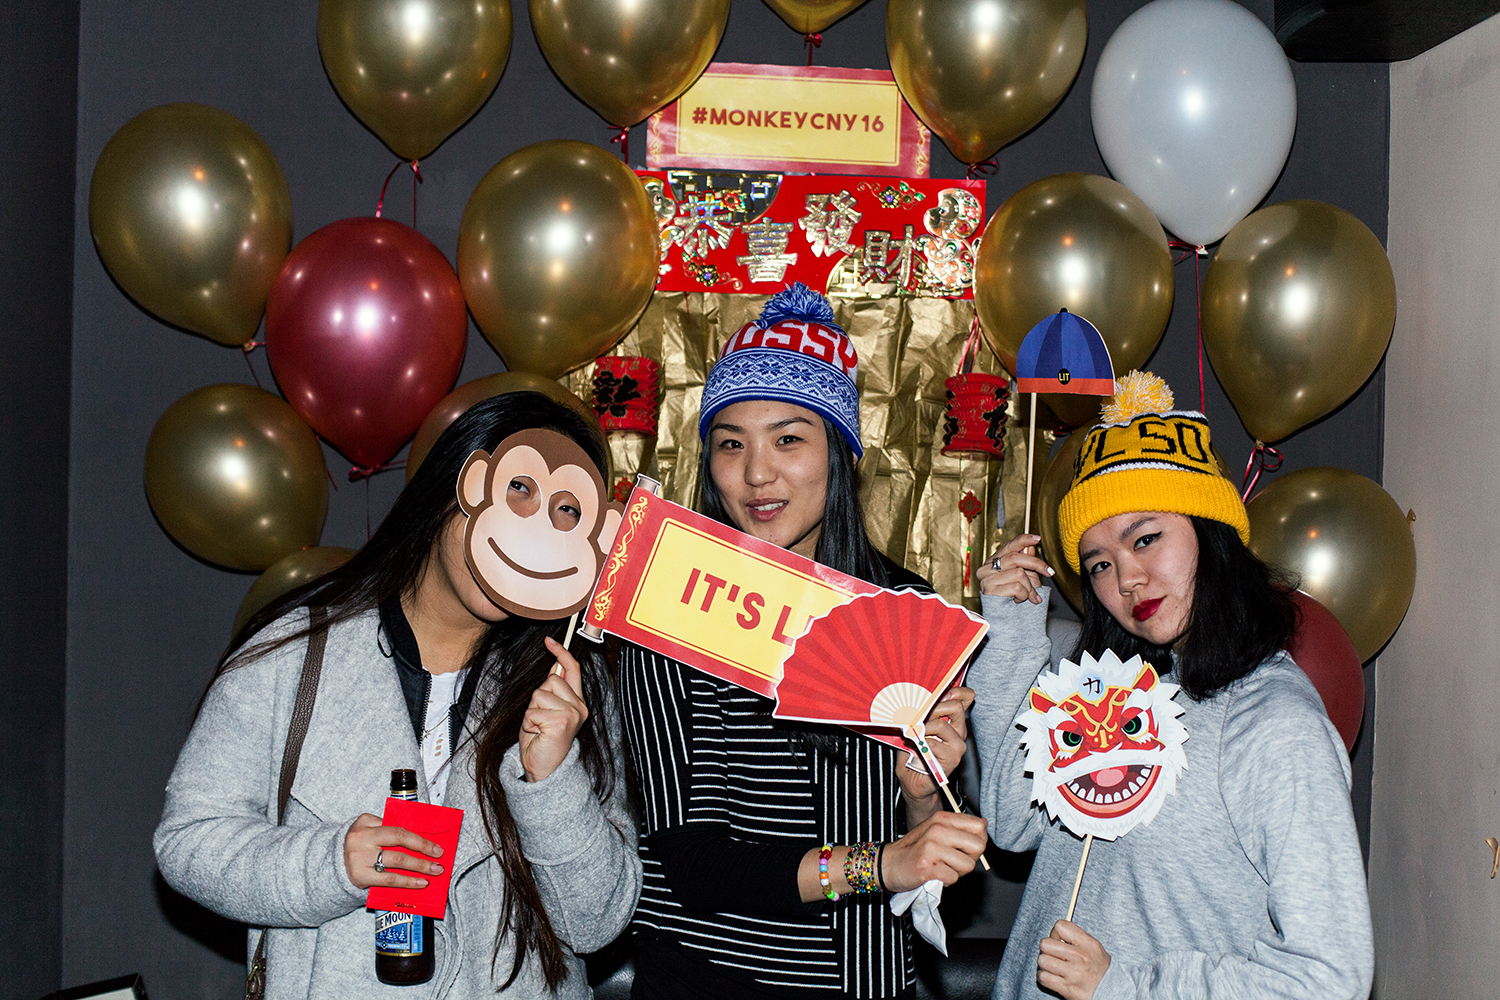 Chinese New Year Karaoke Party, Karaoke Cave, New York, Feb, 2016Chinese New Year Karaoke Party, Karaoke Cave, New York, Feb, 2016_24.jpg